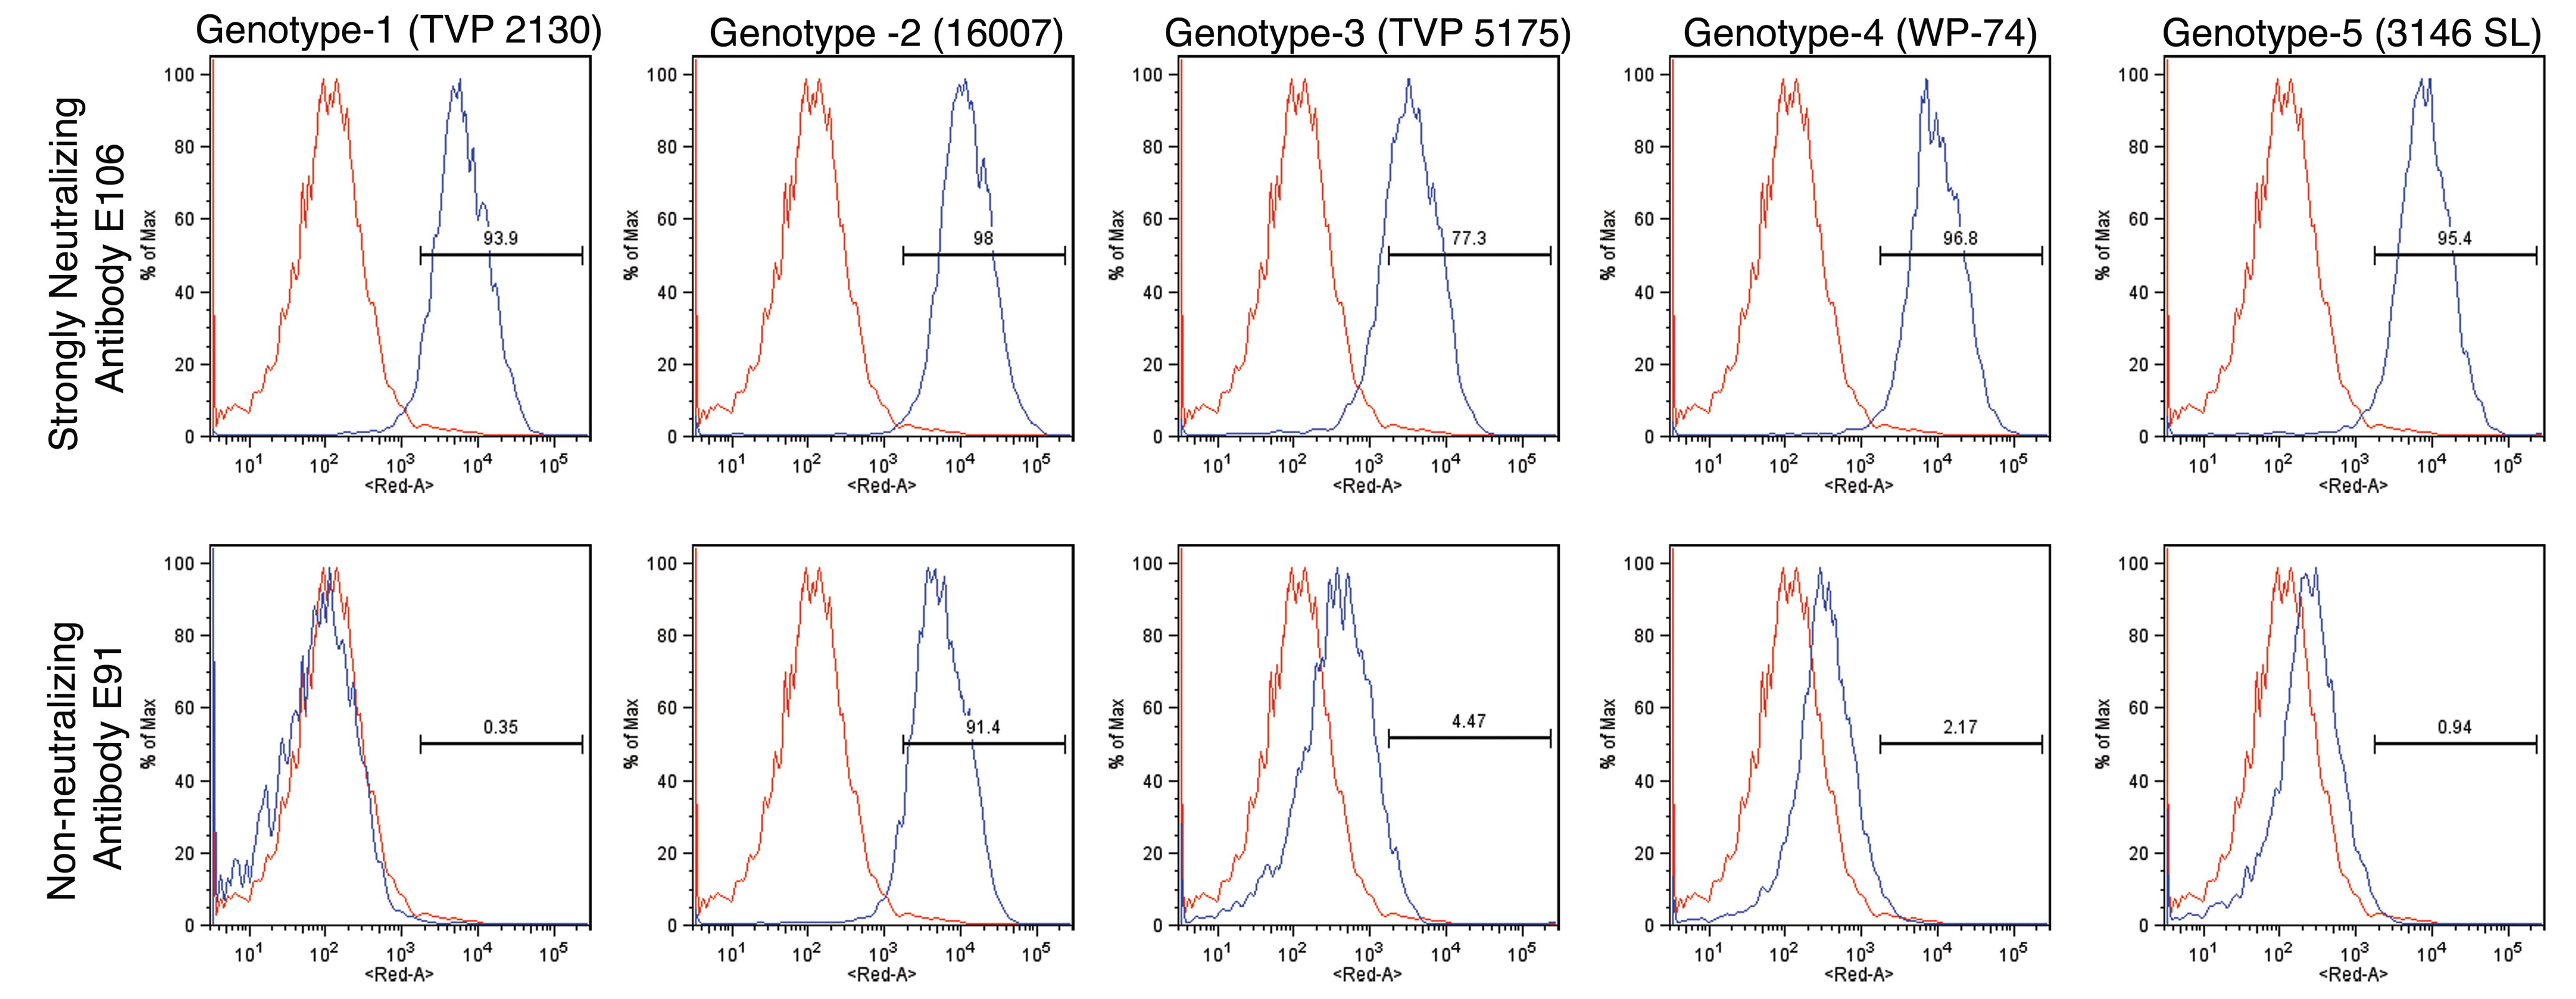 Binding of MAbs to cells infected with different genotypes of DENV-1.